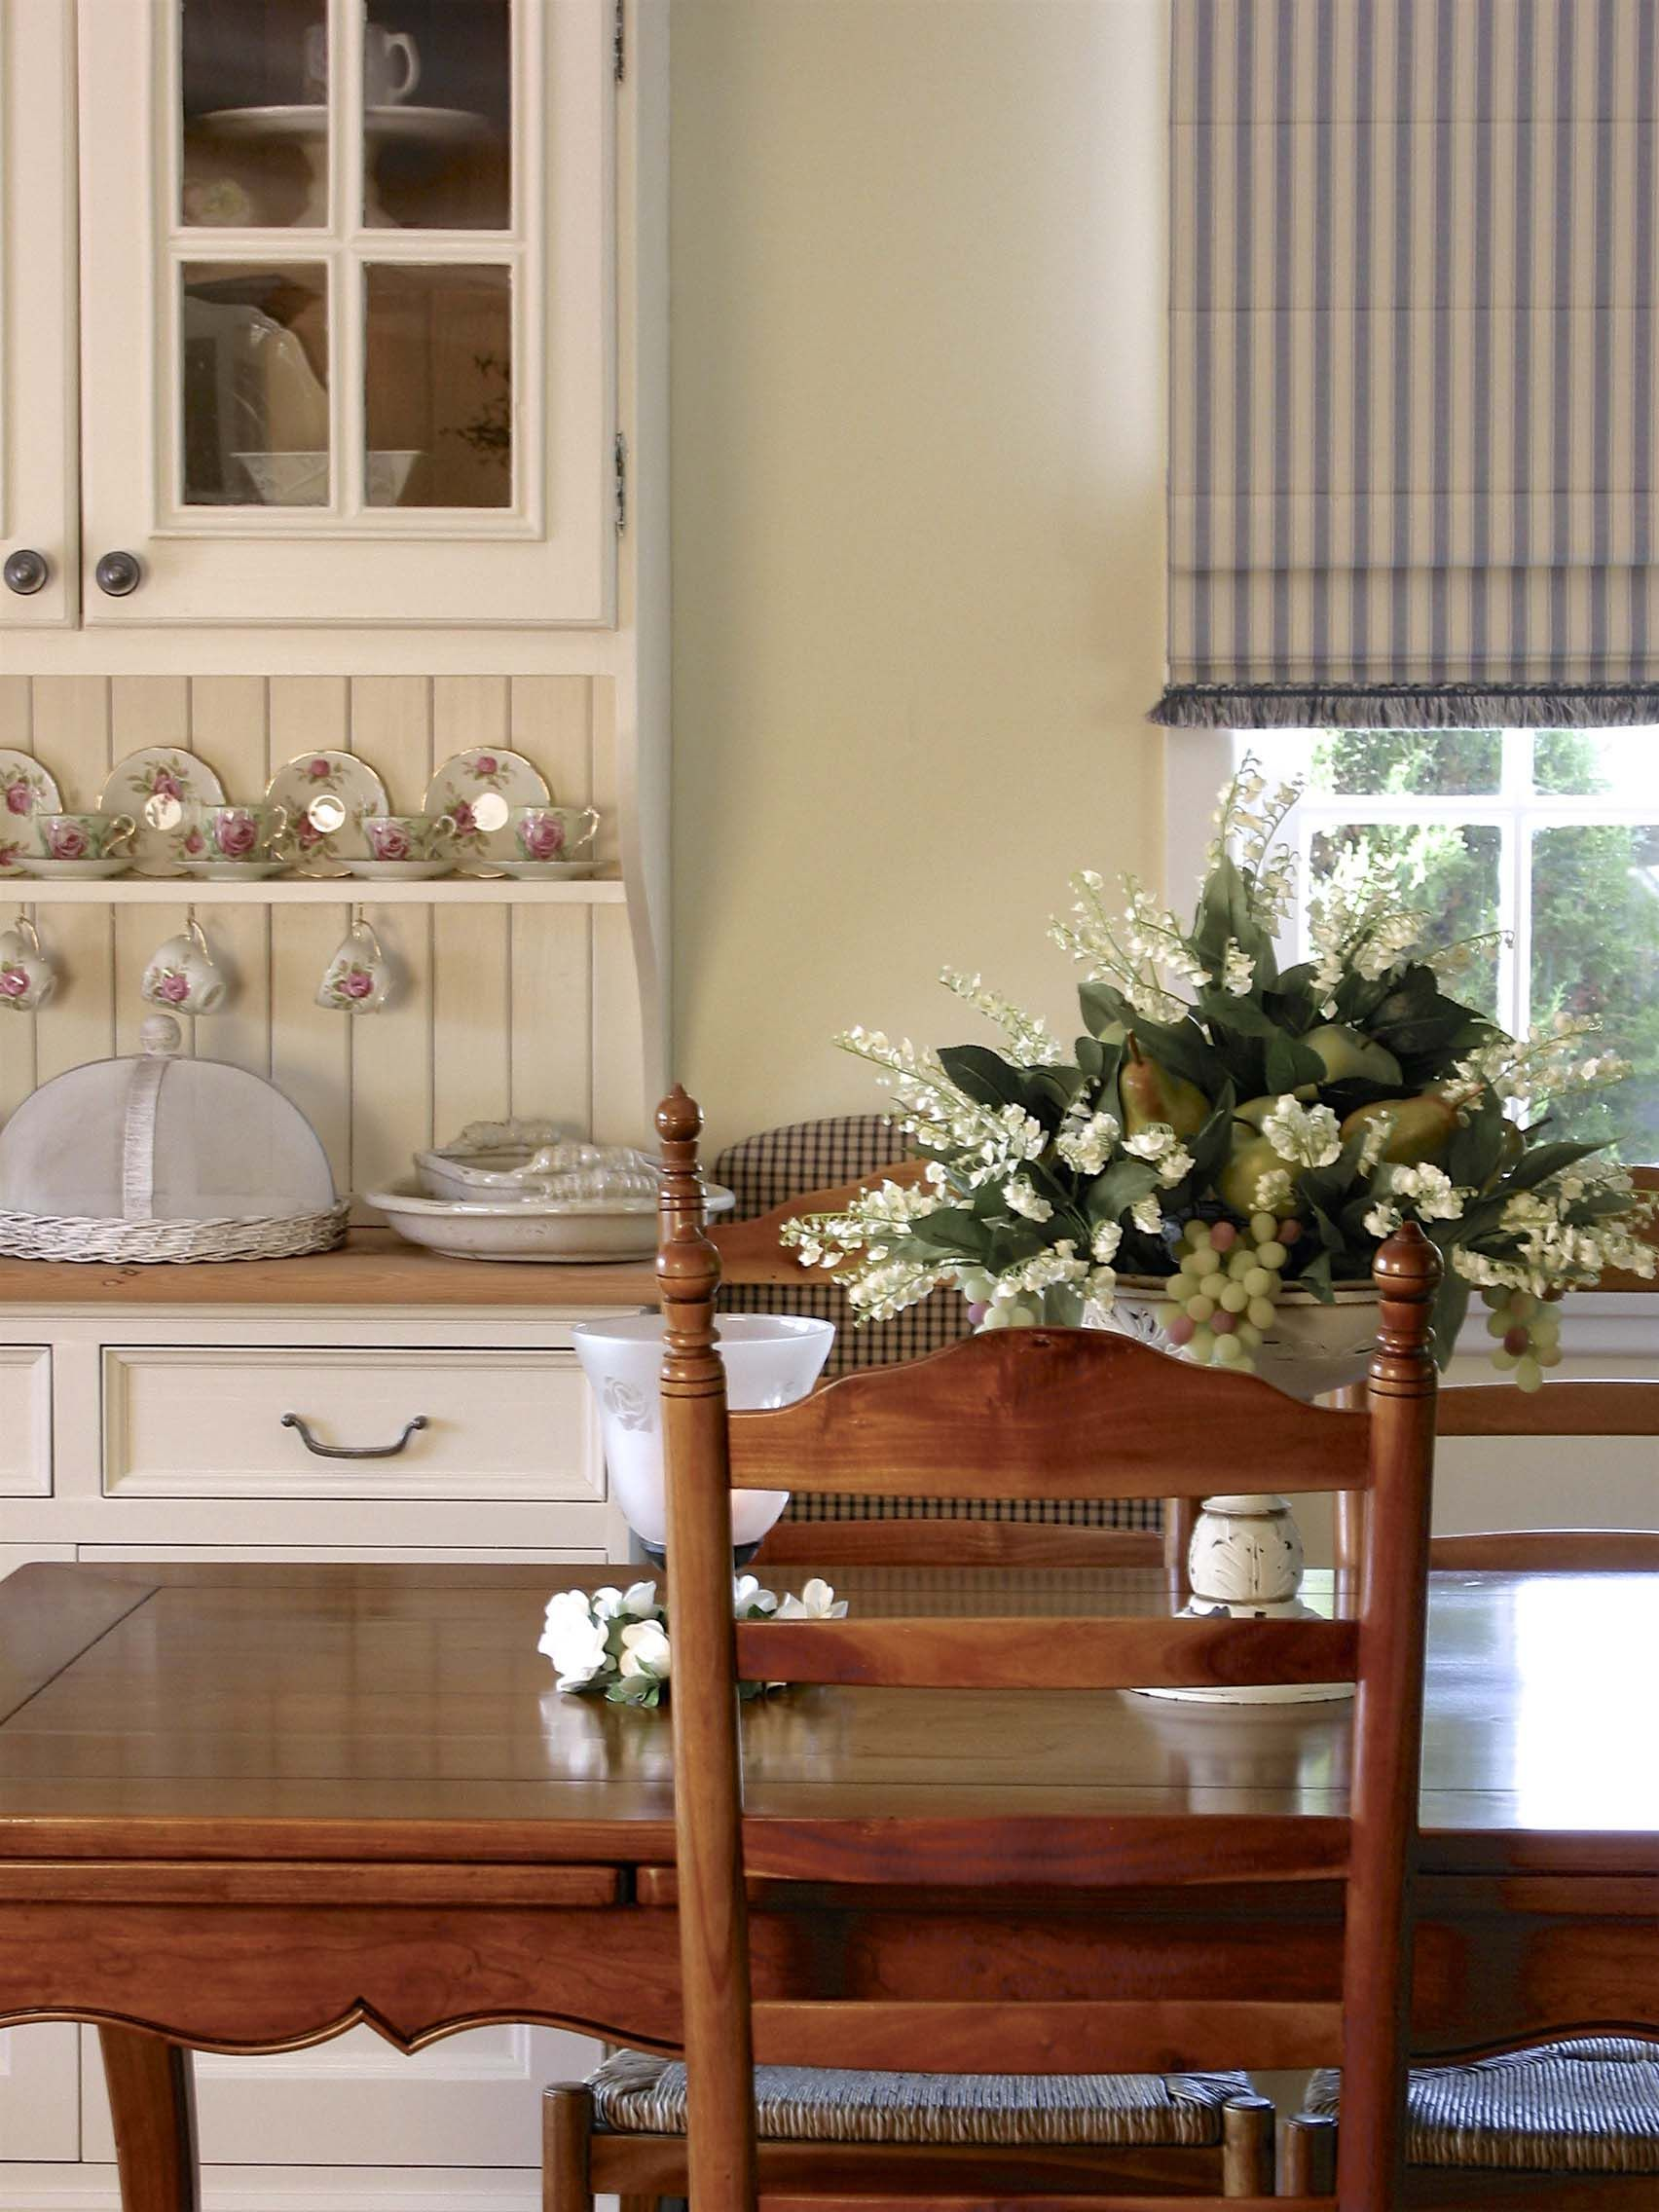 This French farmhouse kitchen with tiled benchtop plate rack and butler sink - French provincial style in Sydney Australia & This French farmhouse kitchen with tiled benchtop plate rack and ...